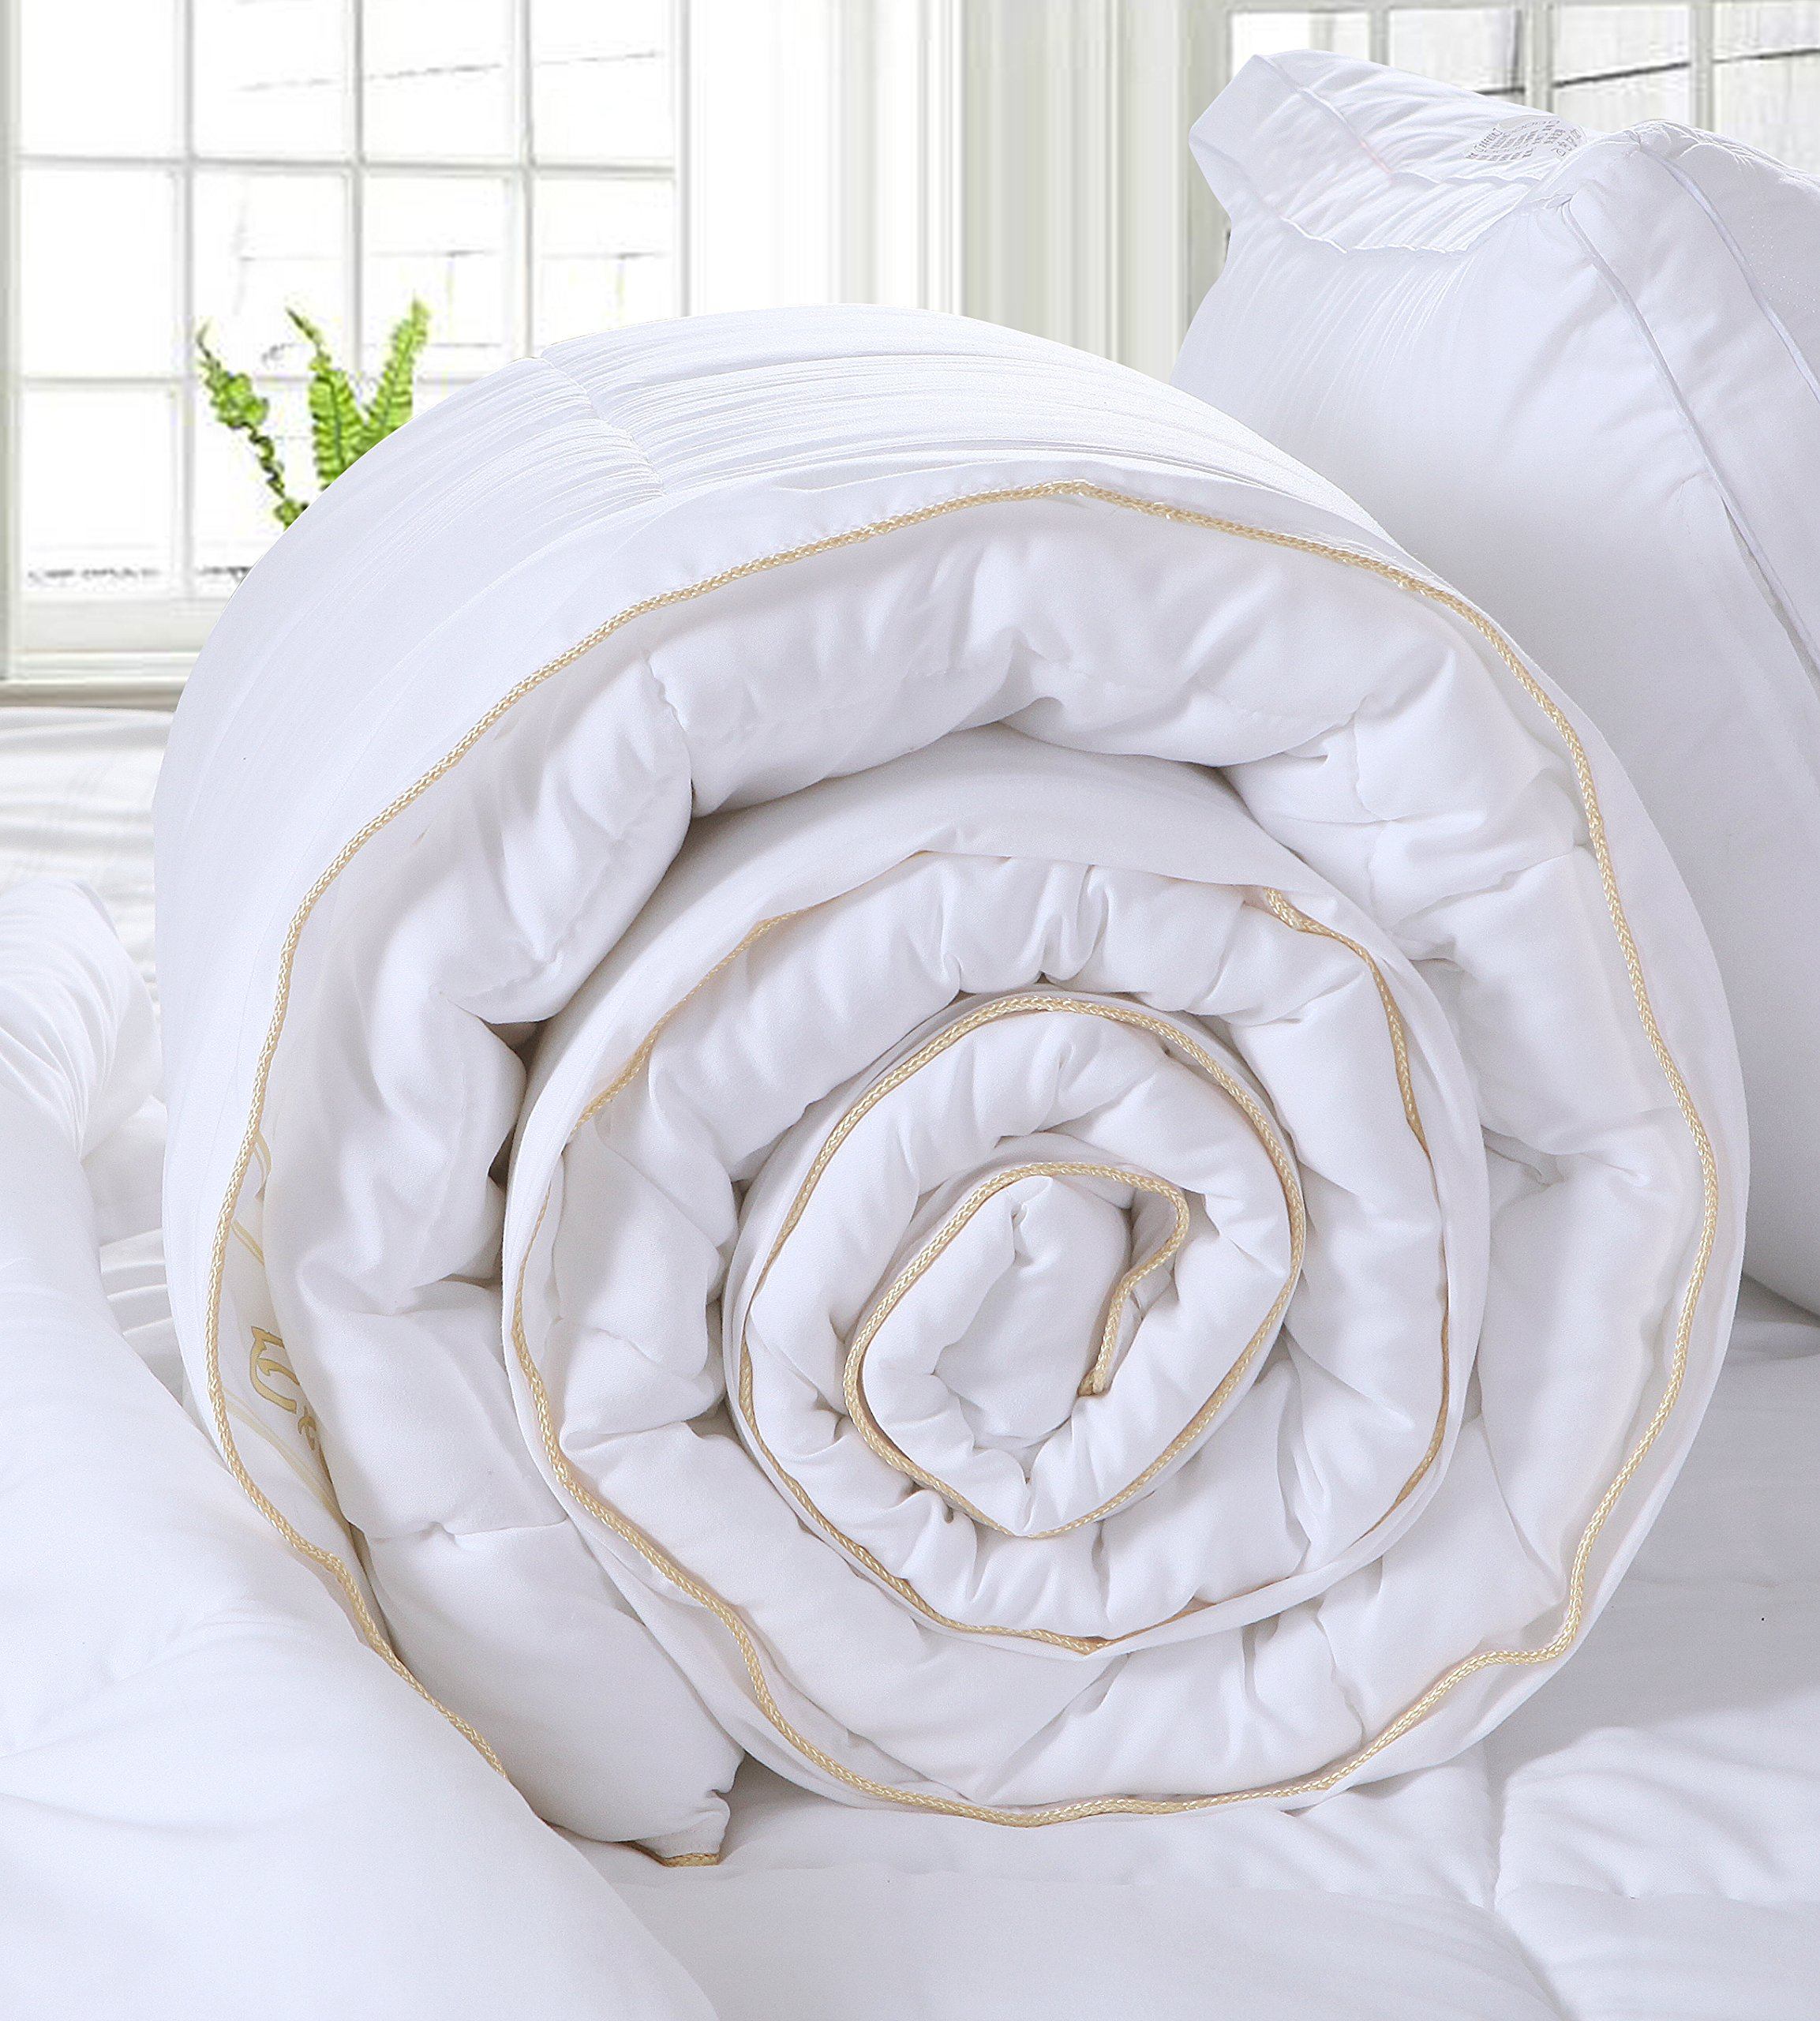 nature linens mattress quilt comforter cotton sheets bamboo king organic twin cover queen wool duvet insert childrens sets bed bedding affordable